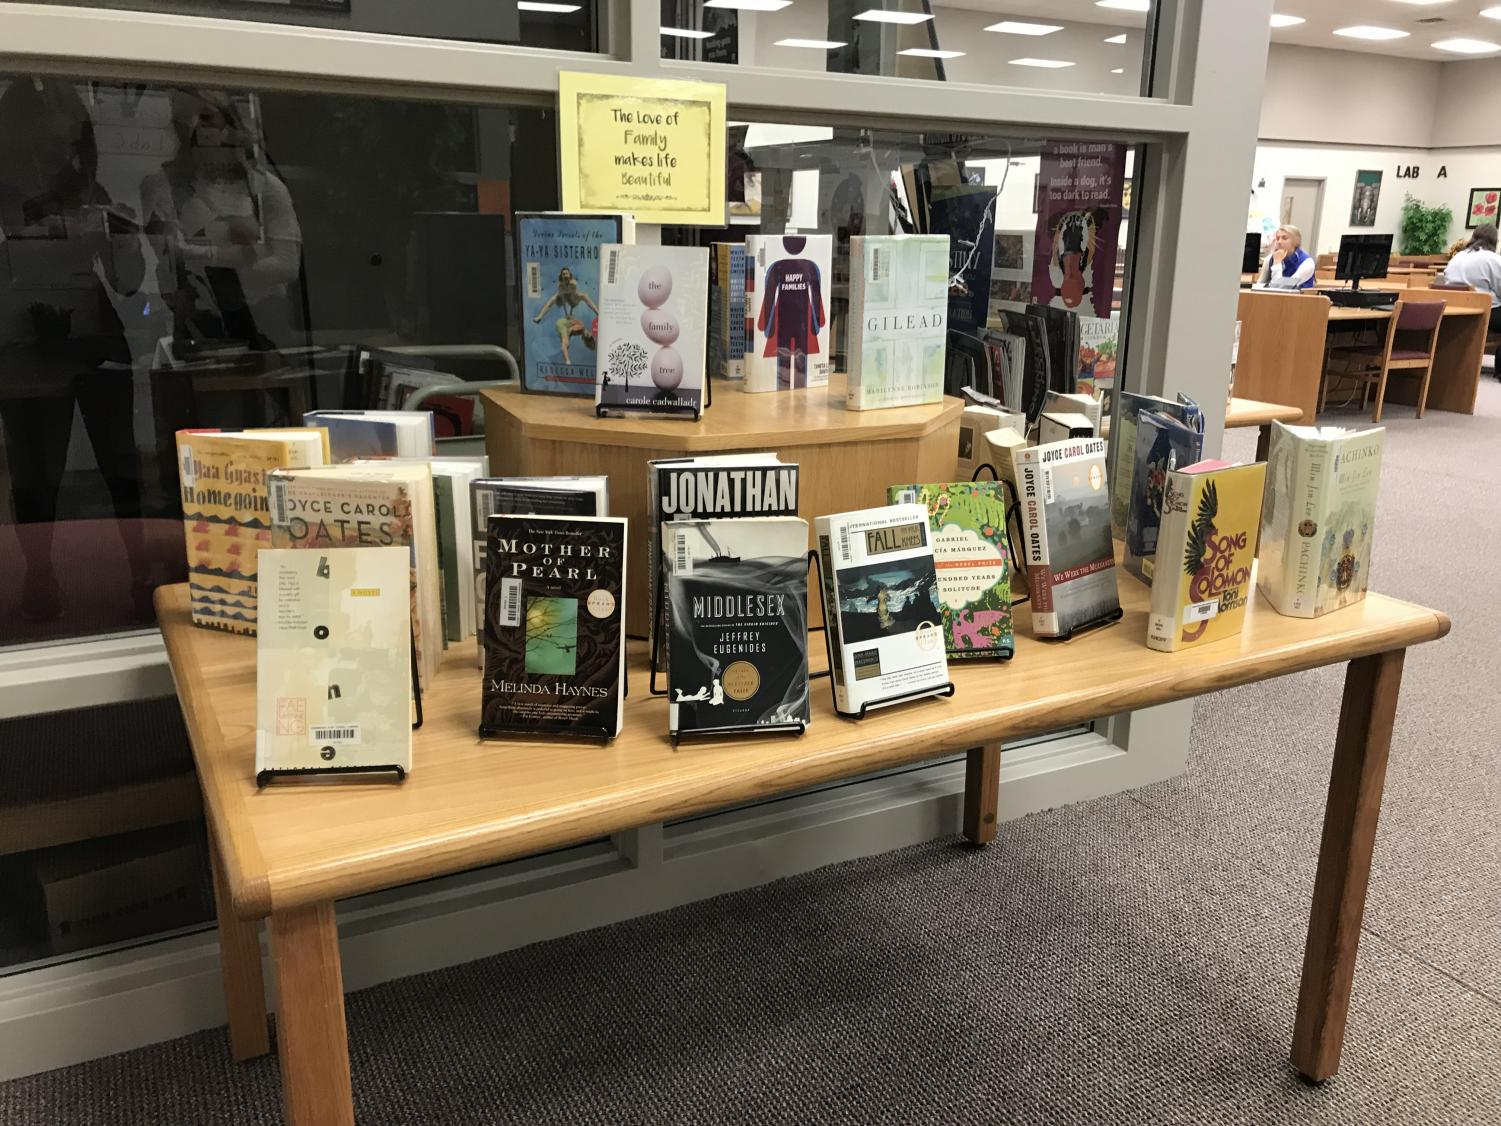 The Arrowhead libraries have a large collection of books for students to choose from.